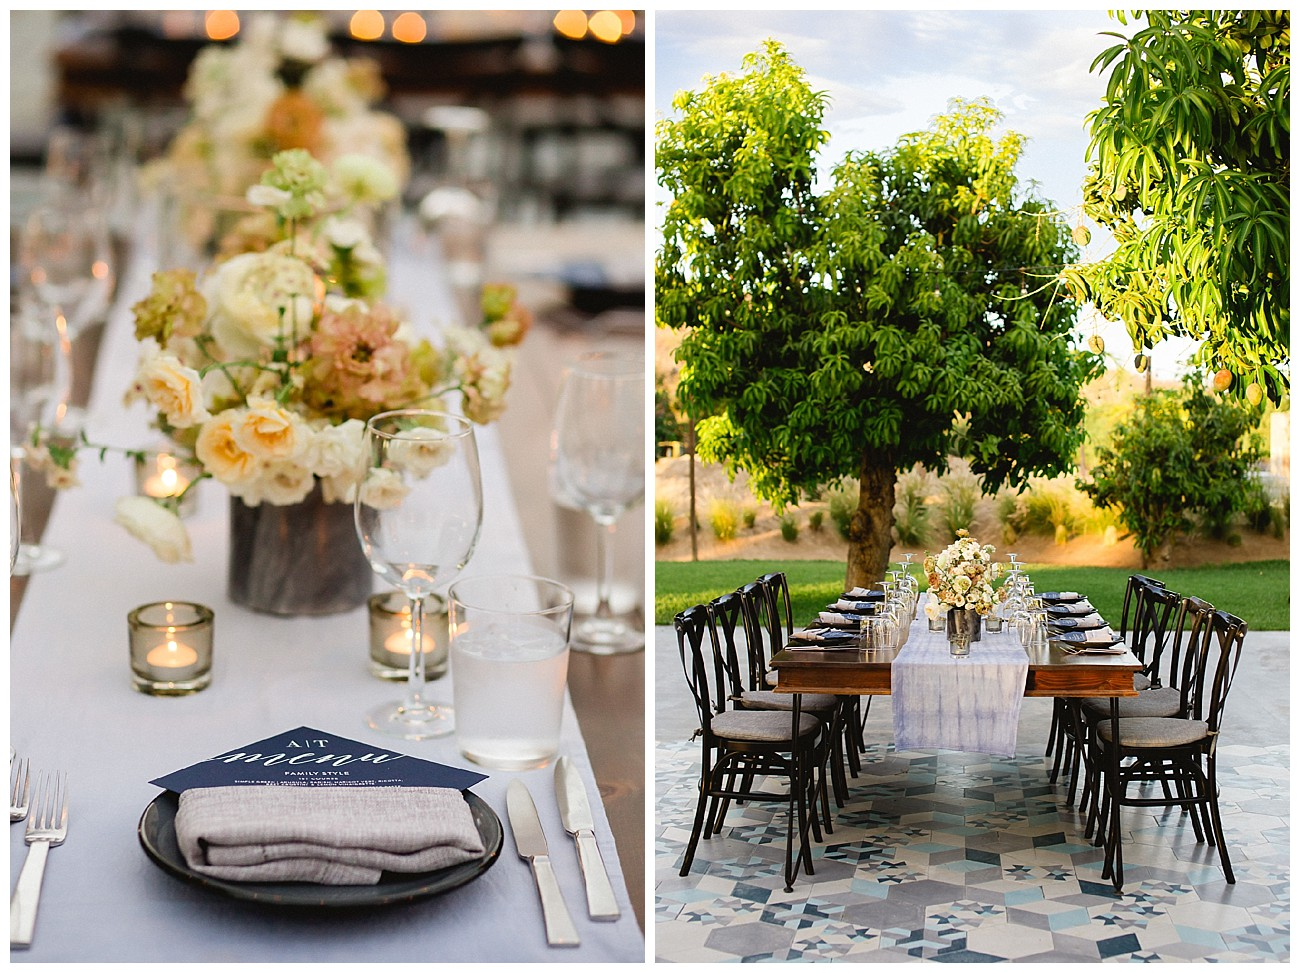 simply classic table setting for a rehearsal dinner at Acre